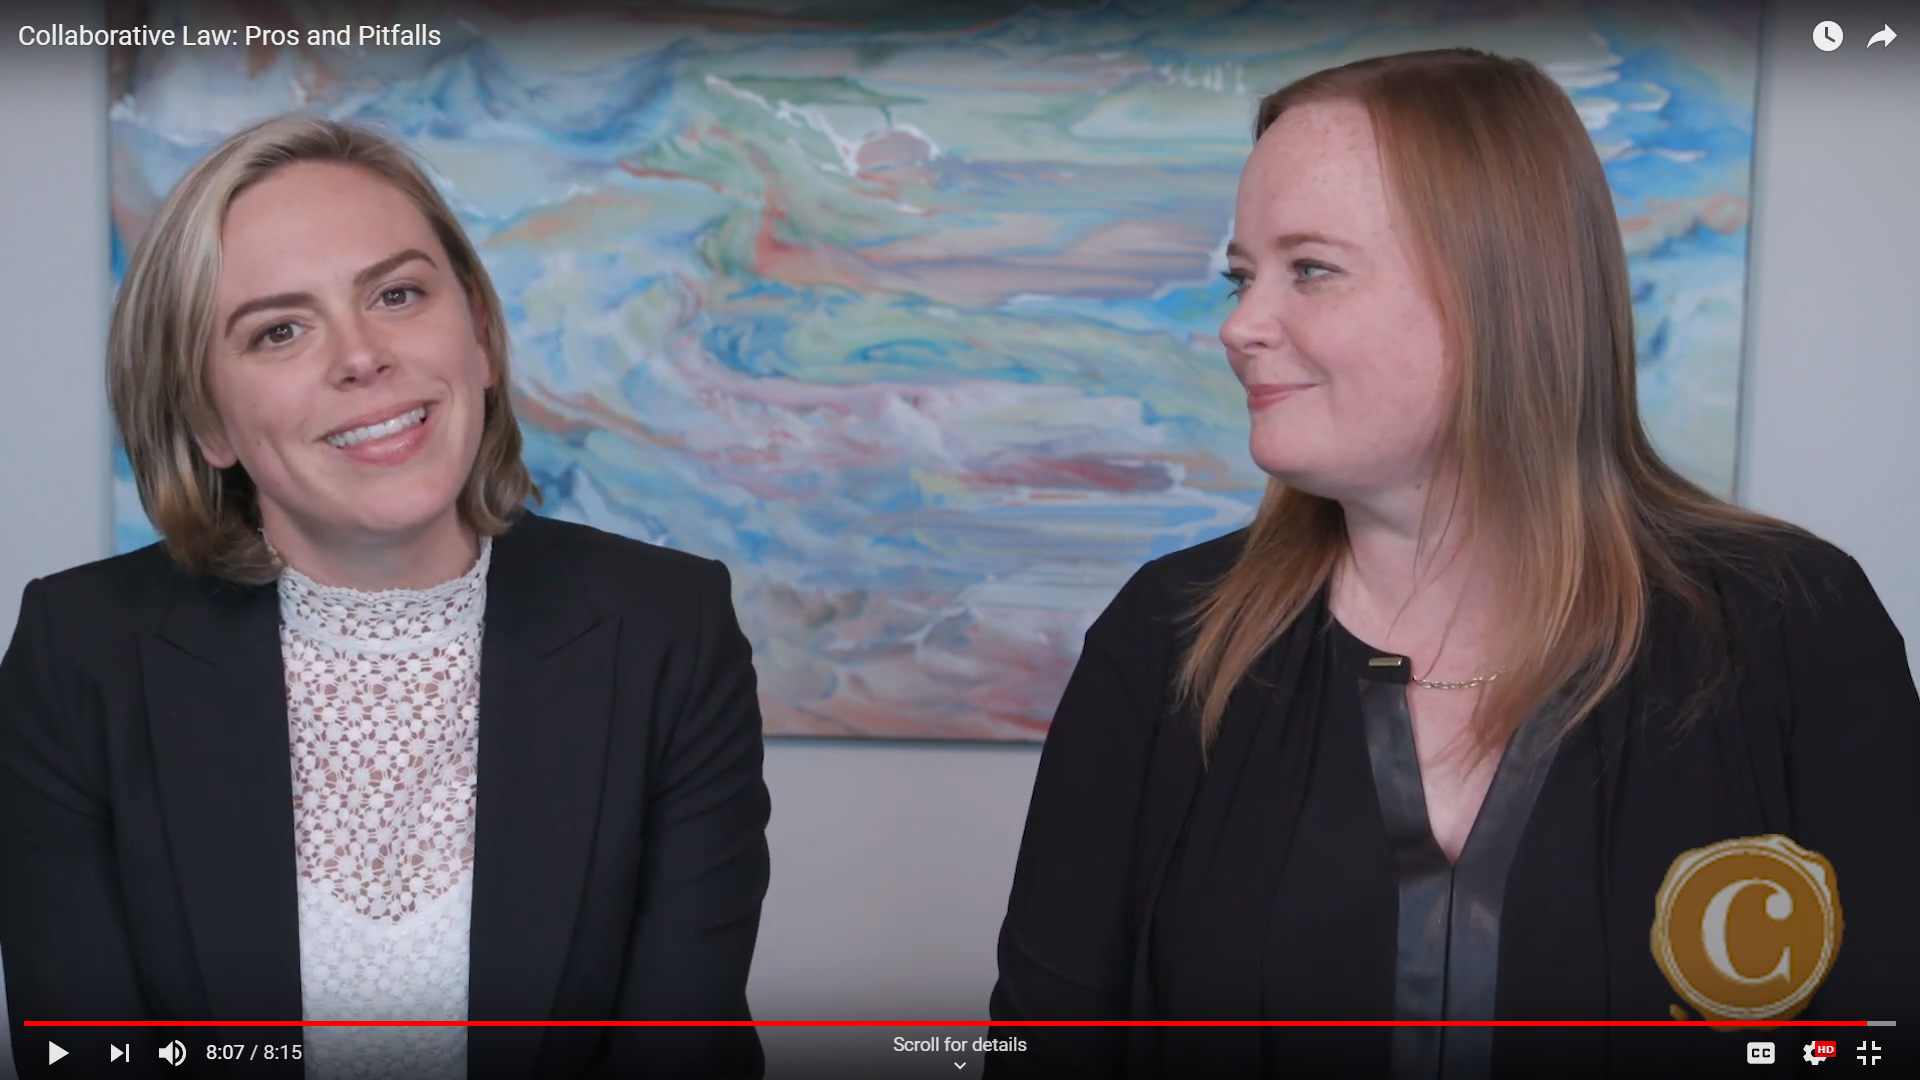 Video: Collaborative Law: Pros and Pitfalls